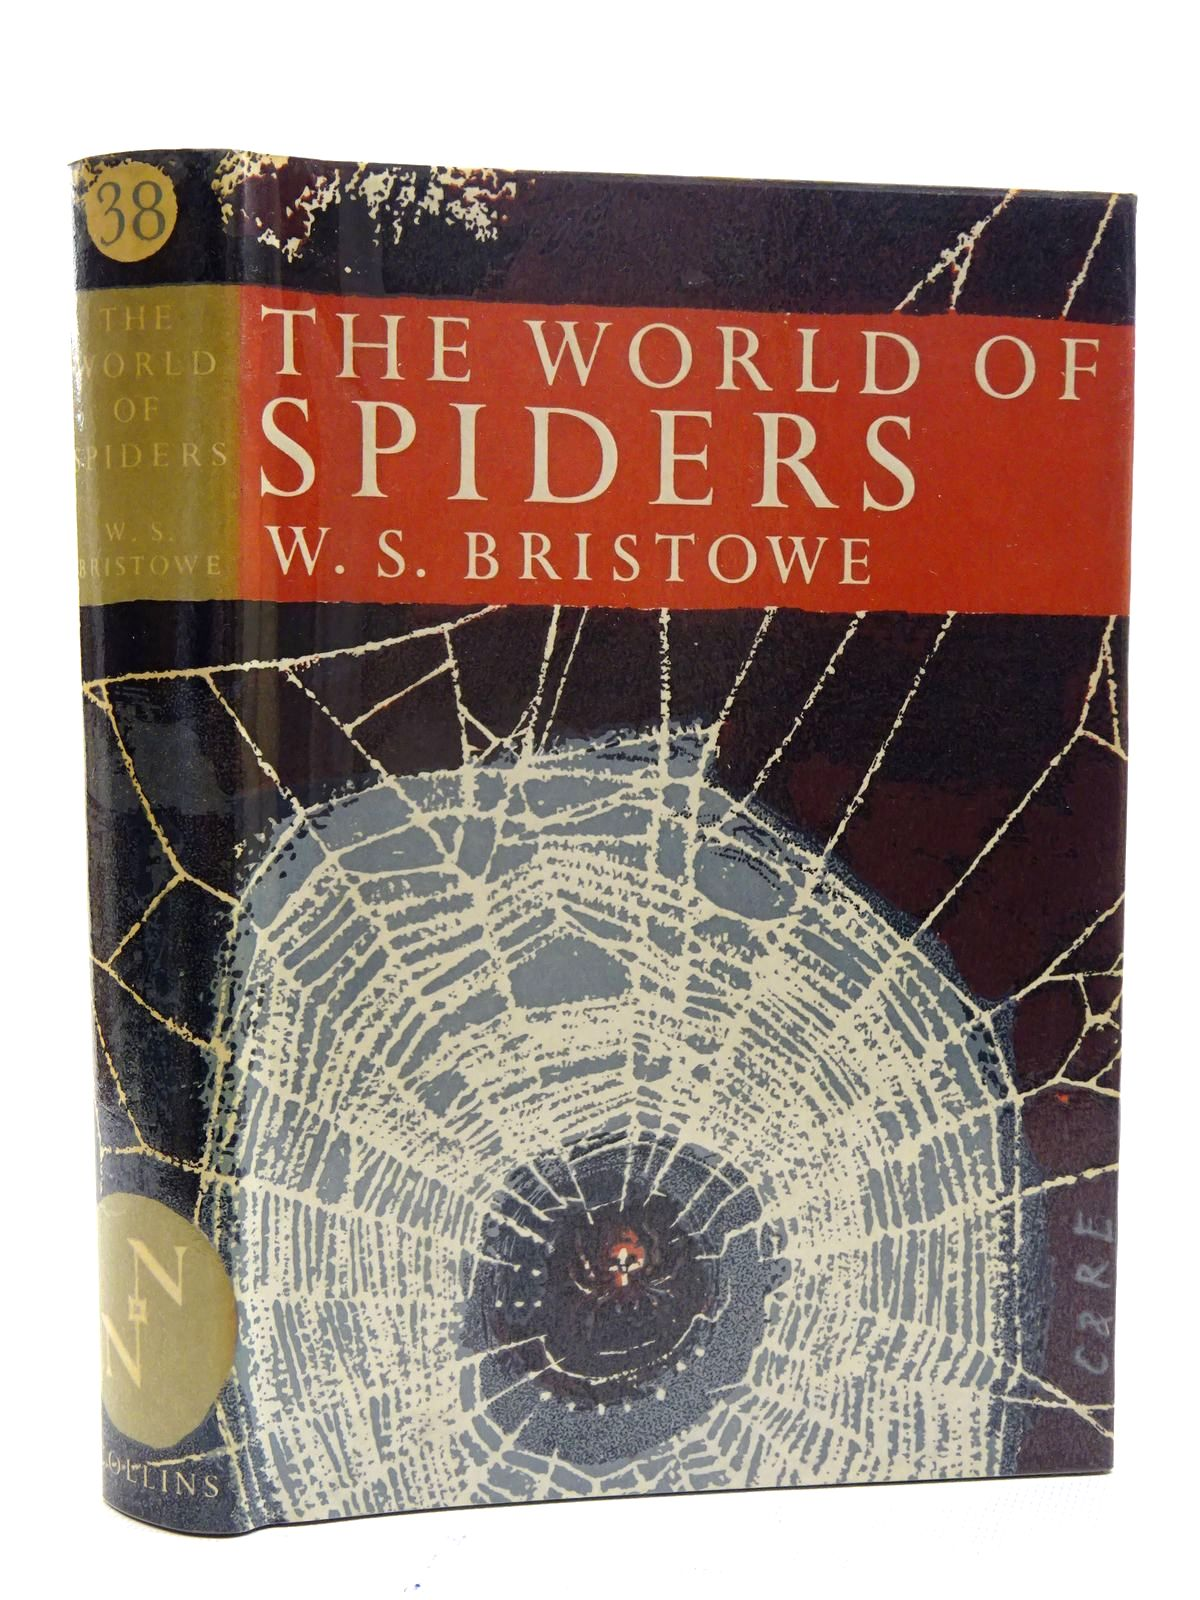 Photo of THE WORLD OF SPIDERS (NN 38) written by Bristowe, W.S. published by Collins (STOCK CODE: 1816286)  for sale by Stella & Rose's Books